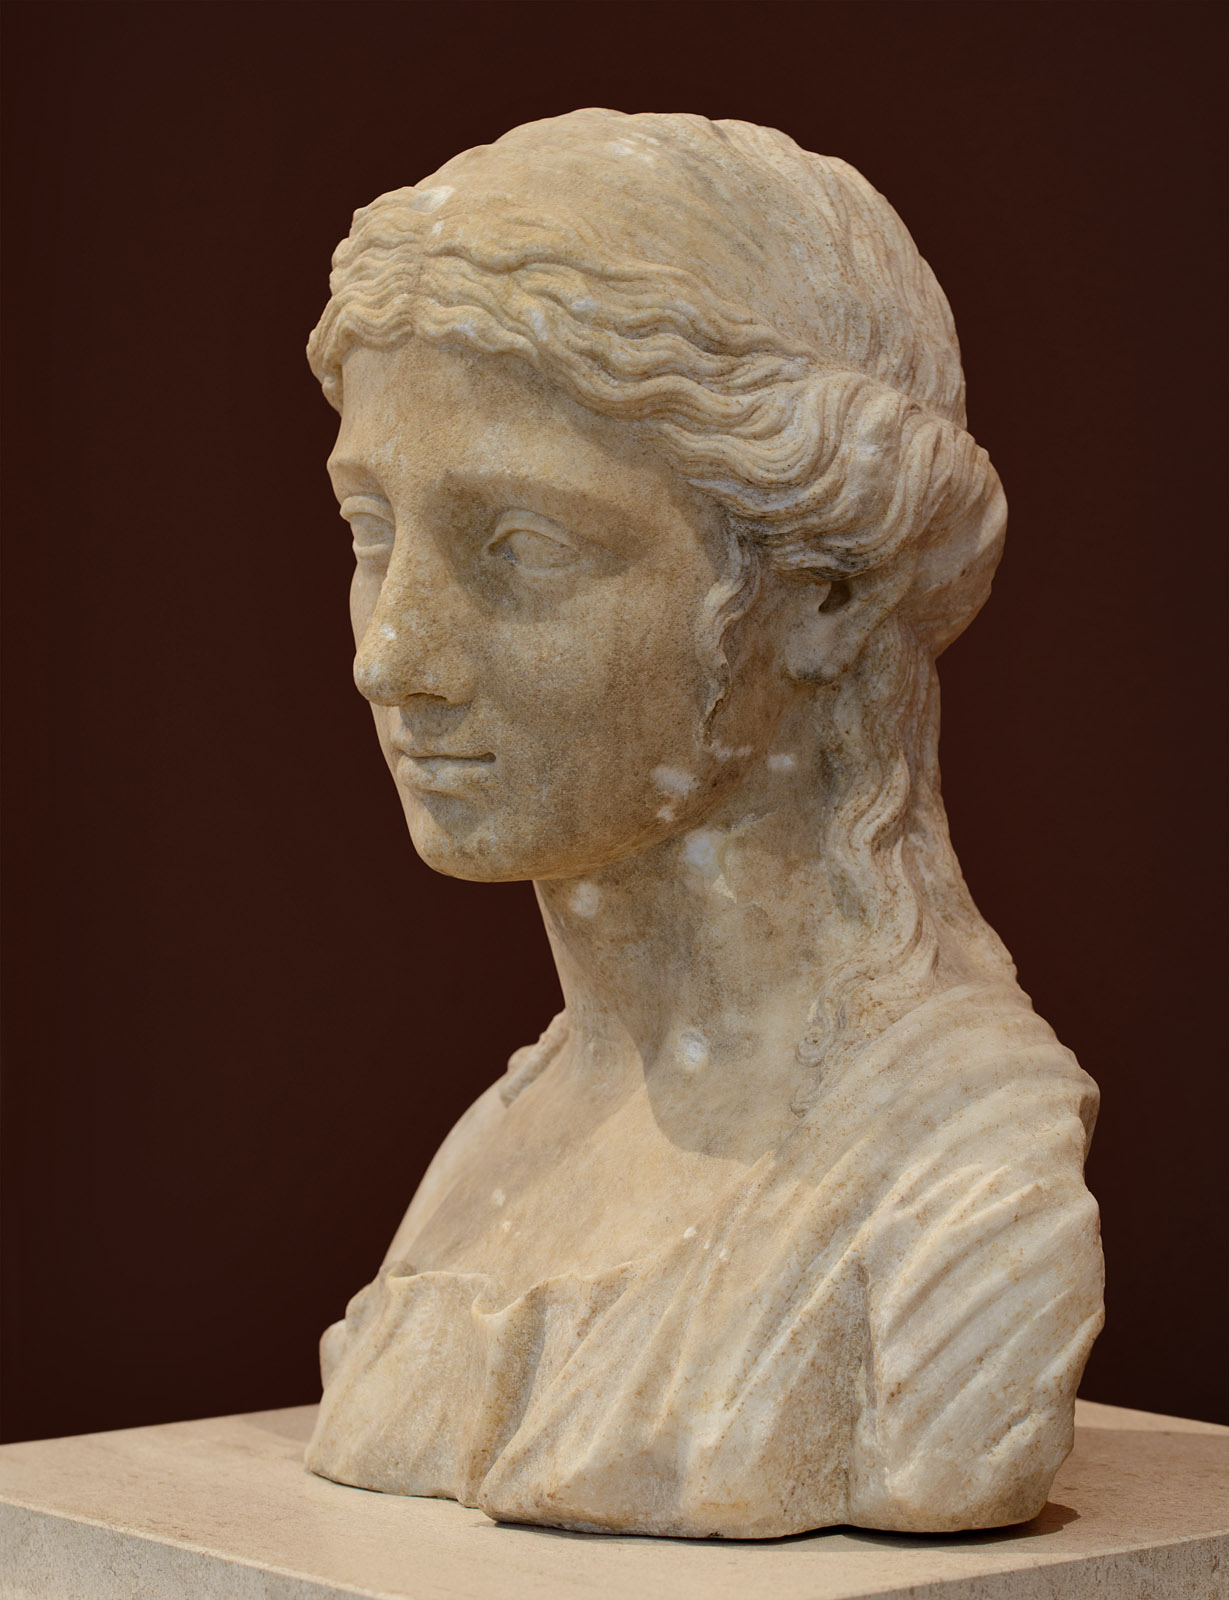 Female portrait. Fragment from a funerary monument. Marble. Patras. Augustan period. Patras, New Archaeological Museum